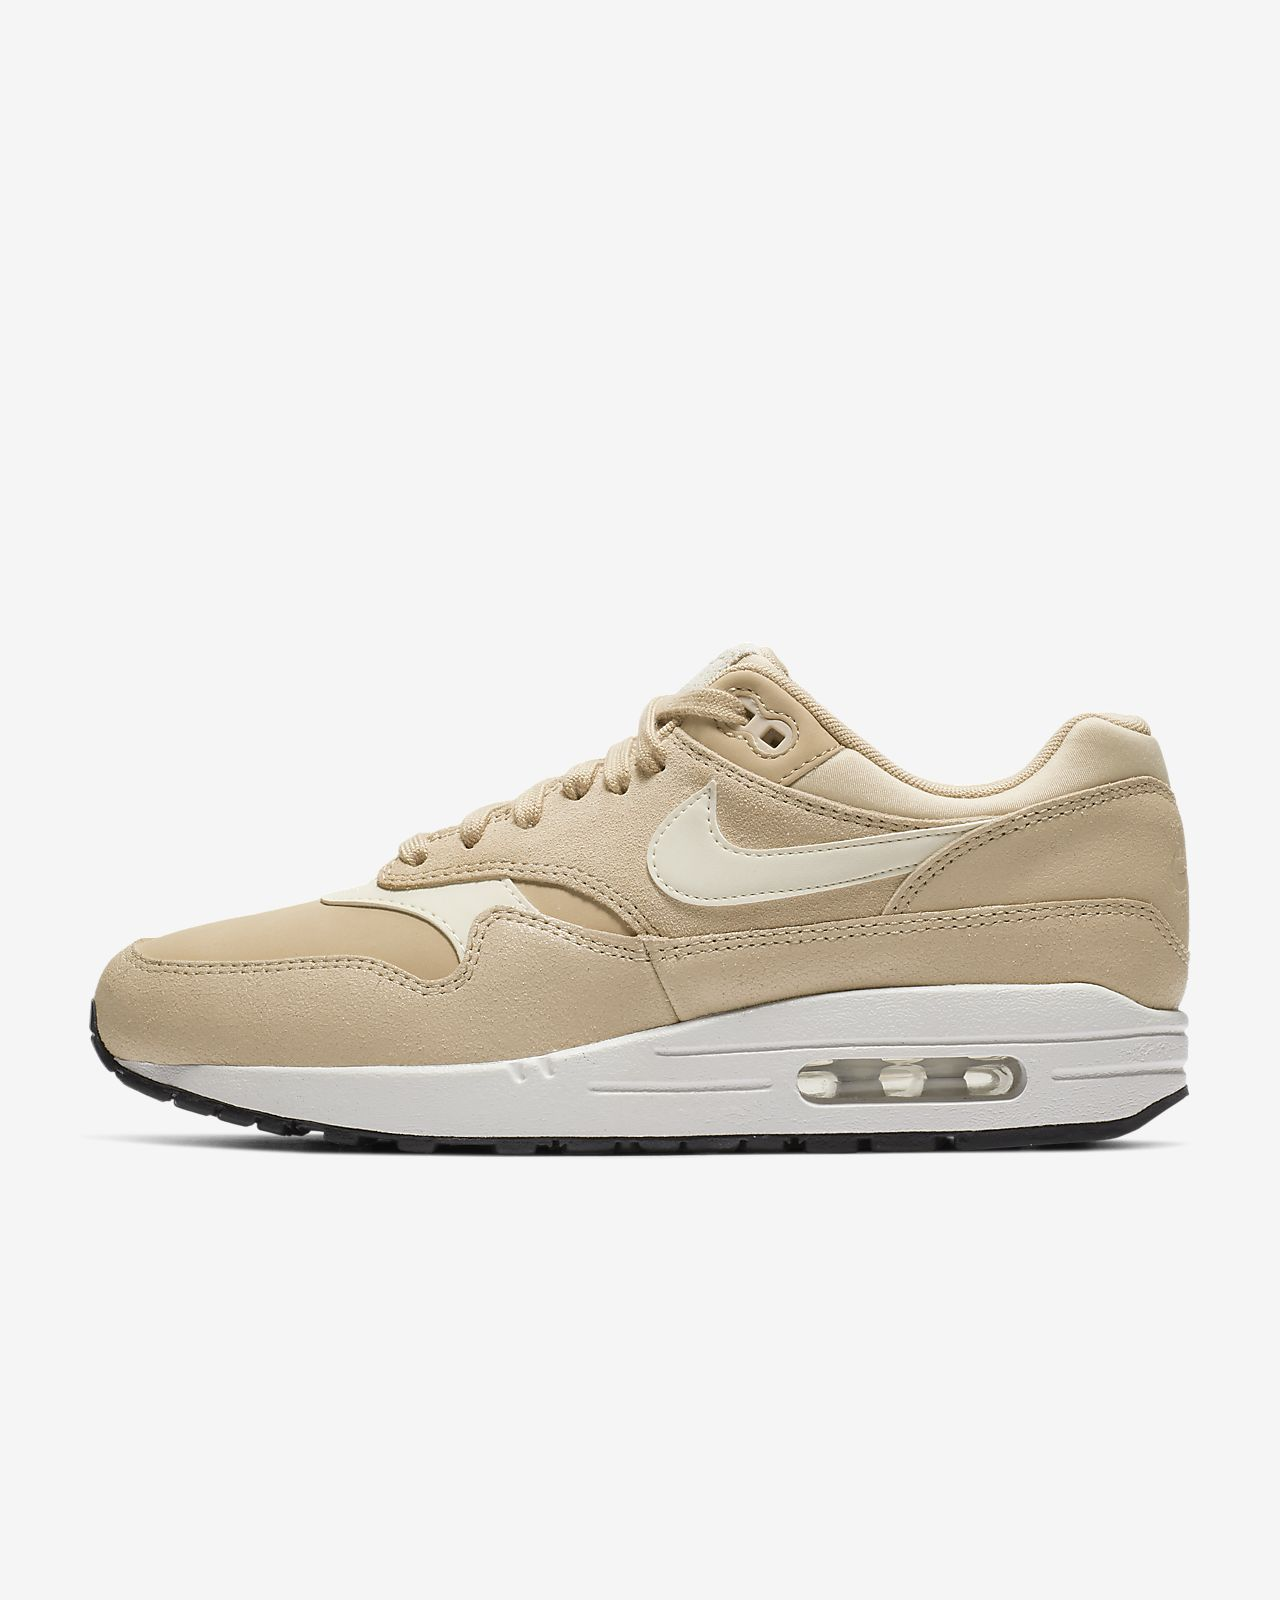 new product 06ca8 d2f3c ... Nike Air Max 1 Premium Zapatillas - Mujer